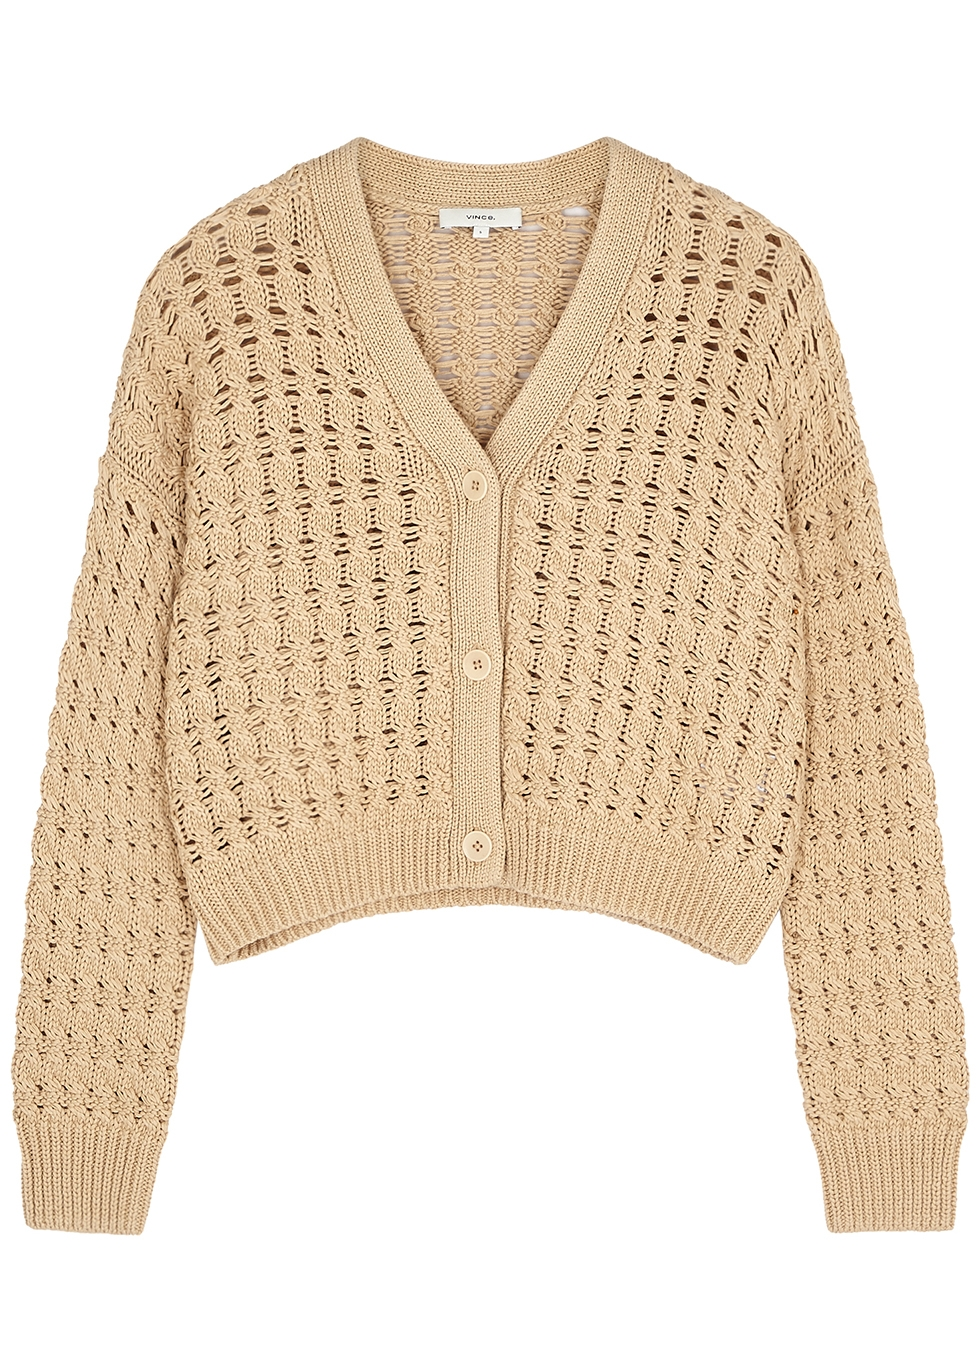 Light brown cropped open-knit cardigan